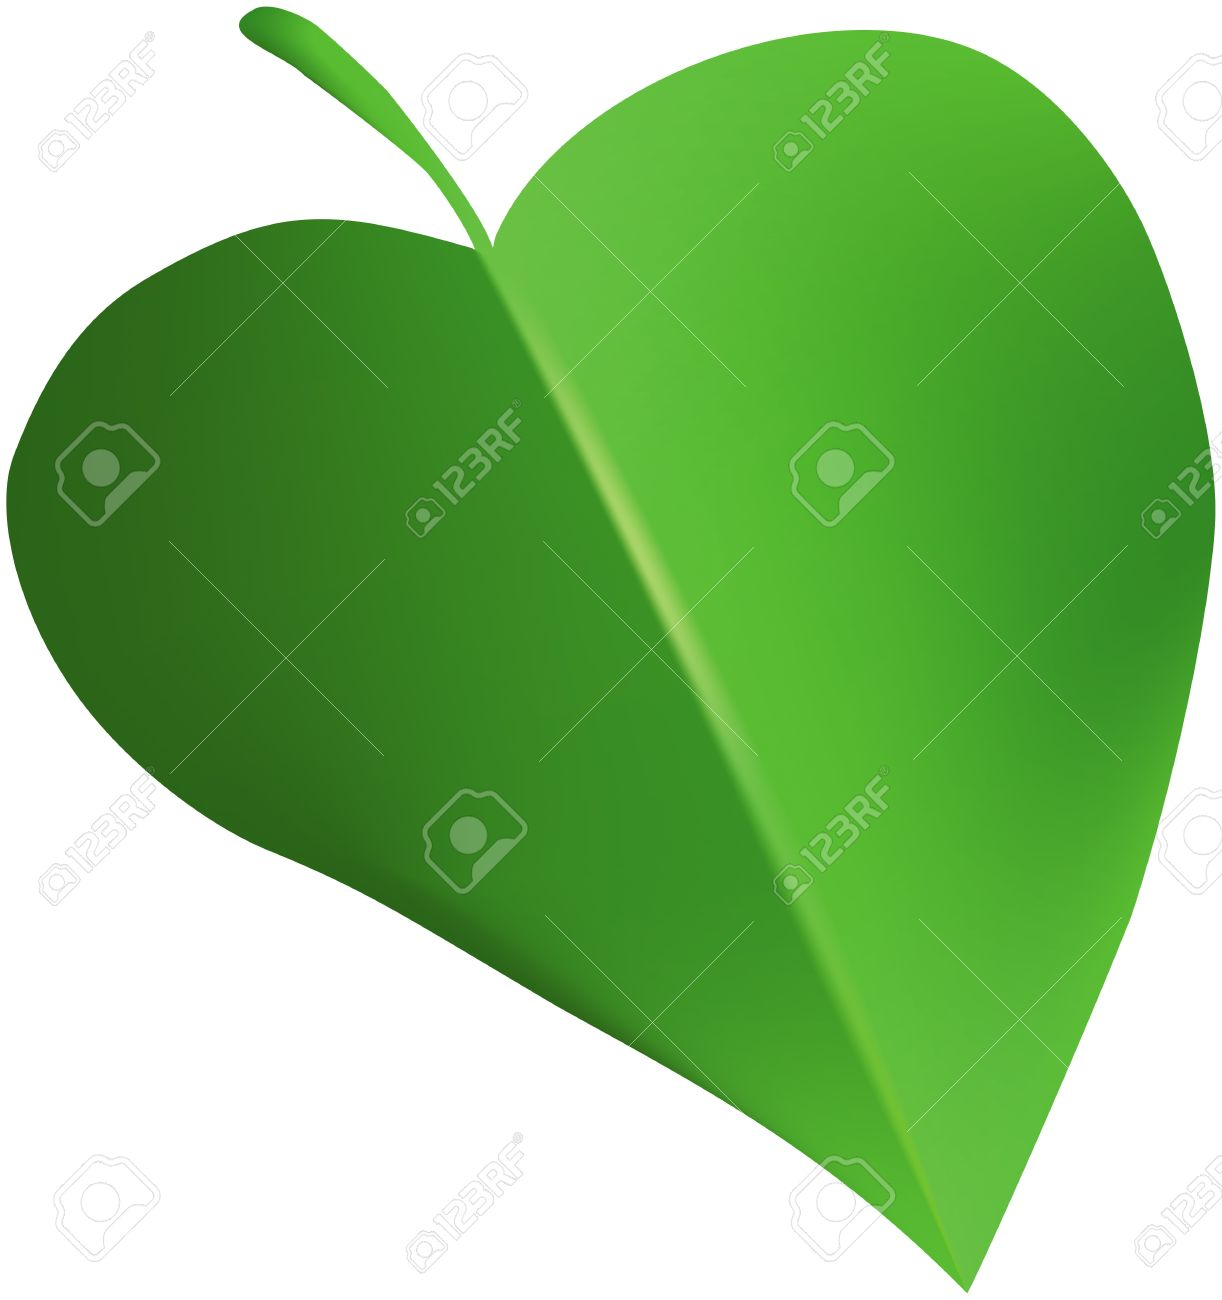 Abstract Green Heart.